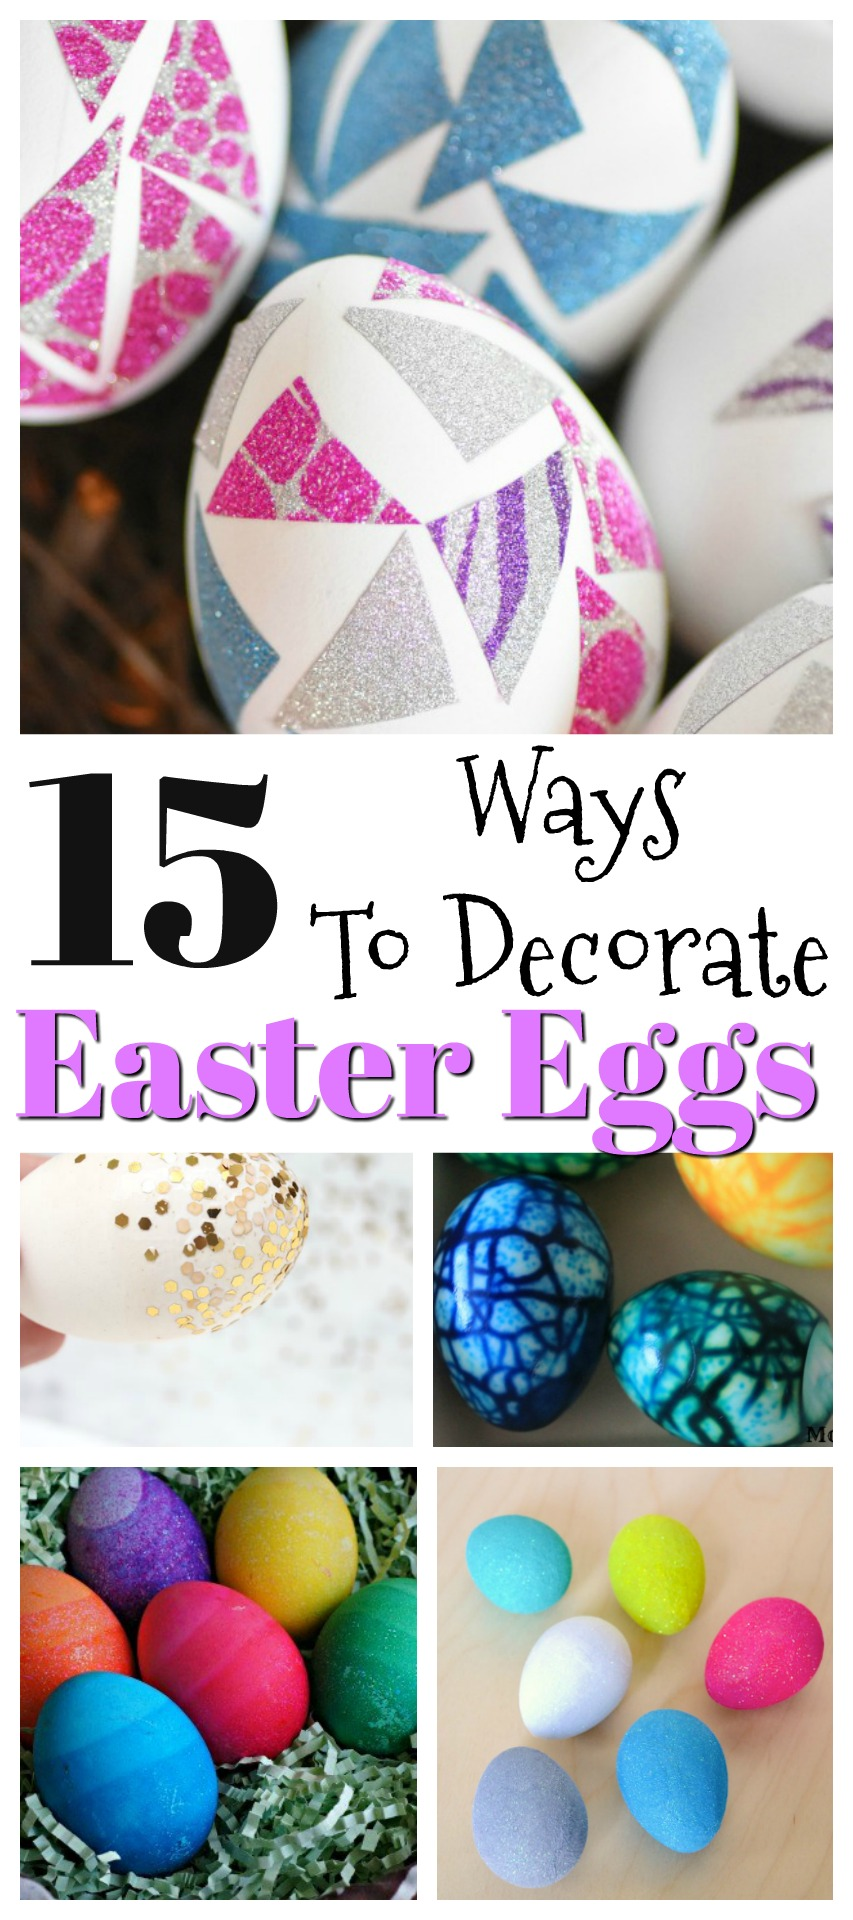 15 Easy Ways to decorate Easter eggs